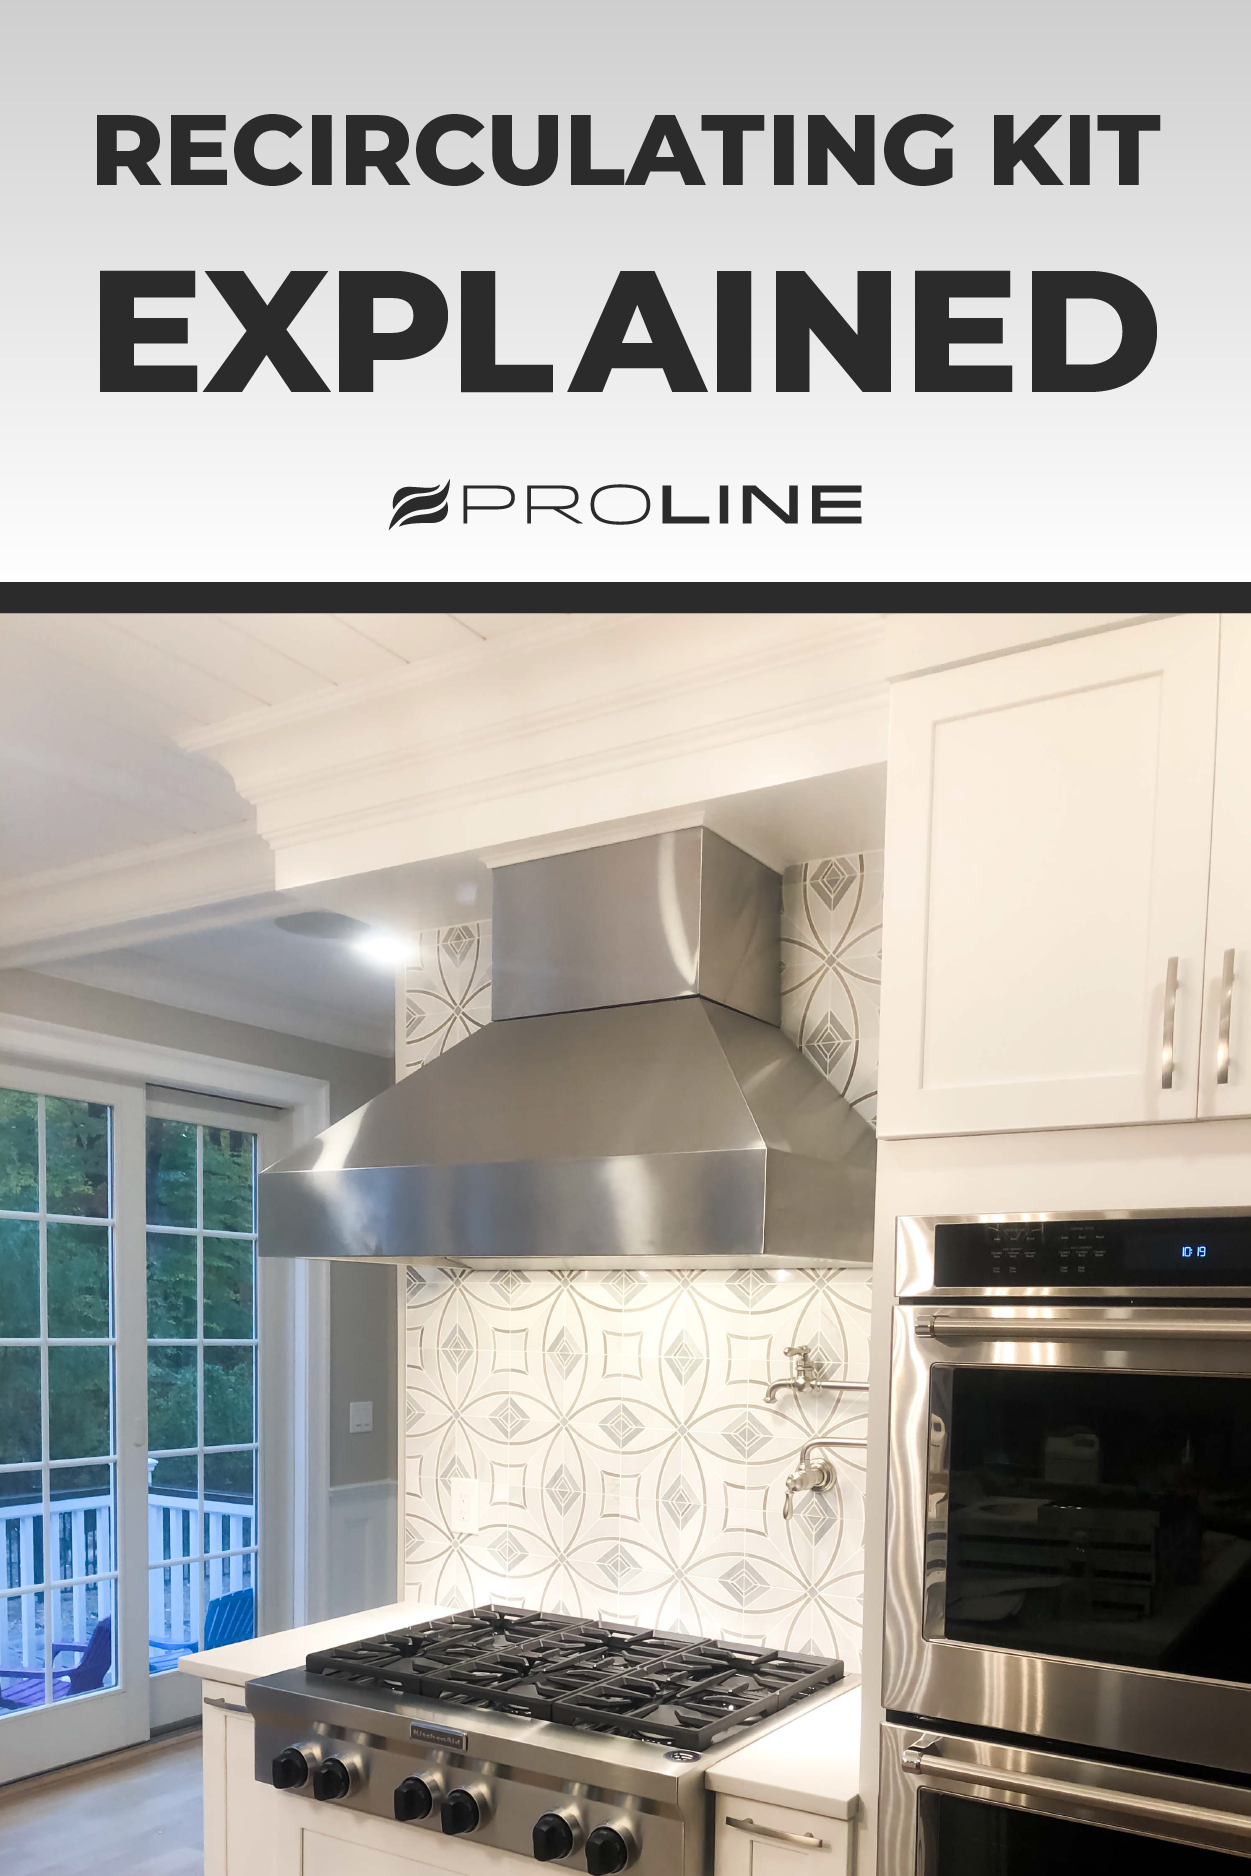 What Is A Recirculating Kit Explained Space Makeover Ductless Range Hood Proline Range Hood